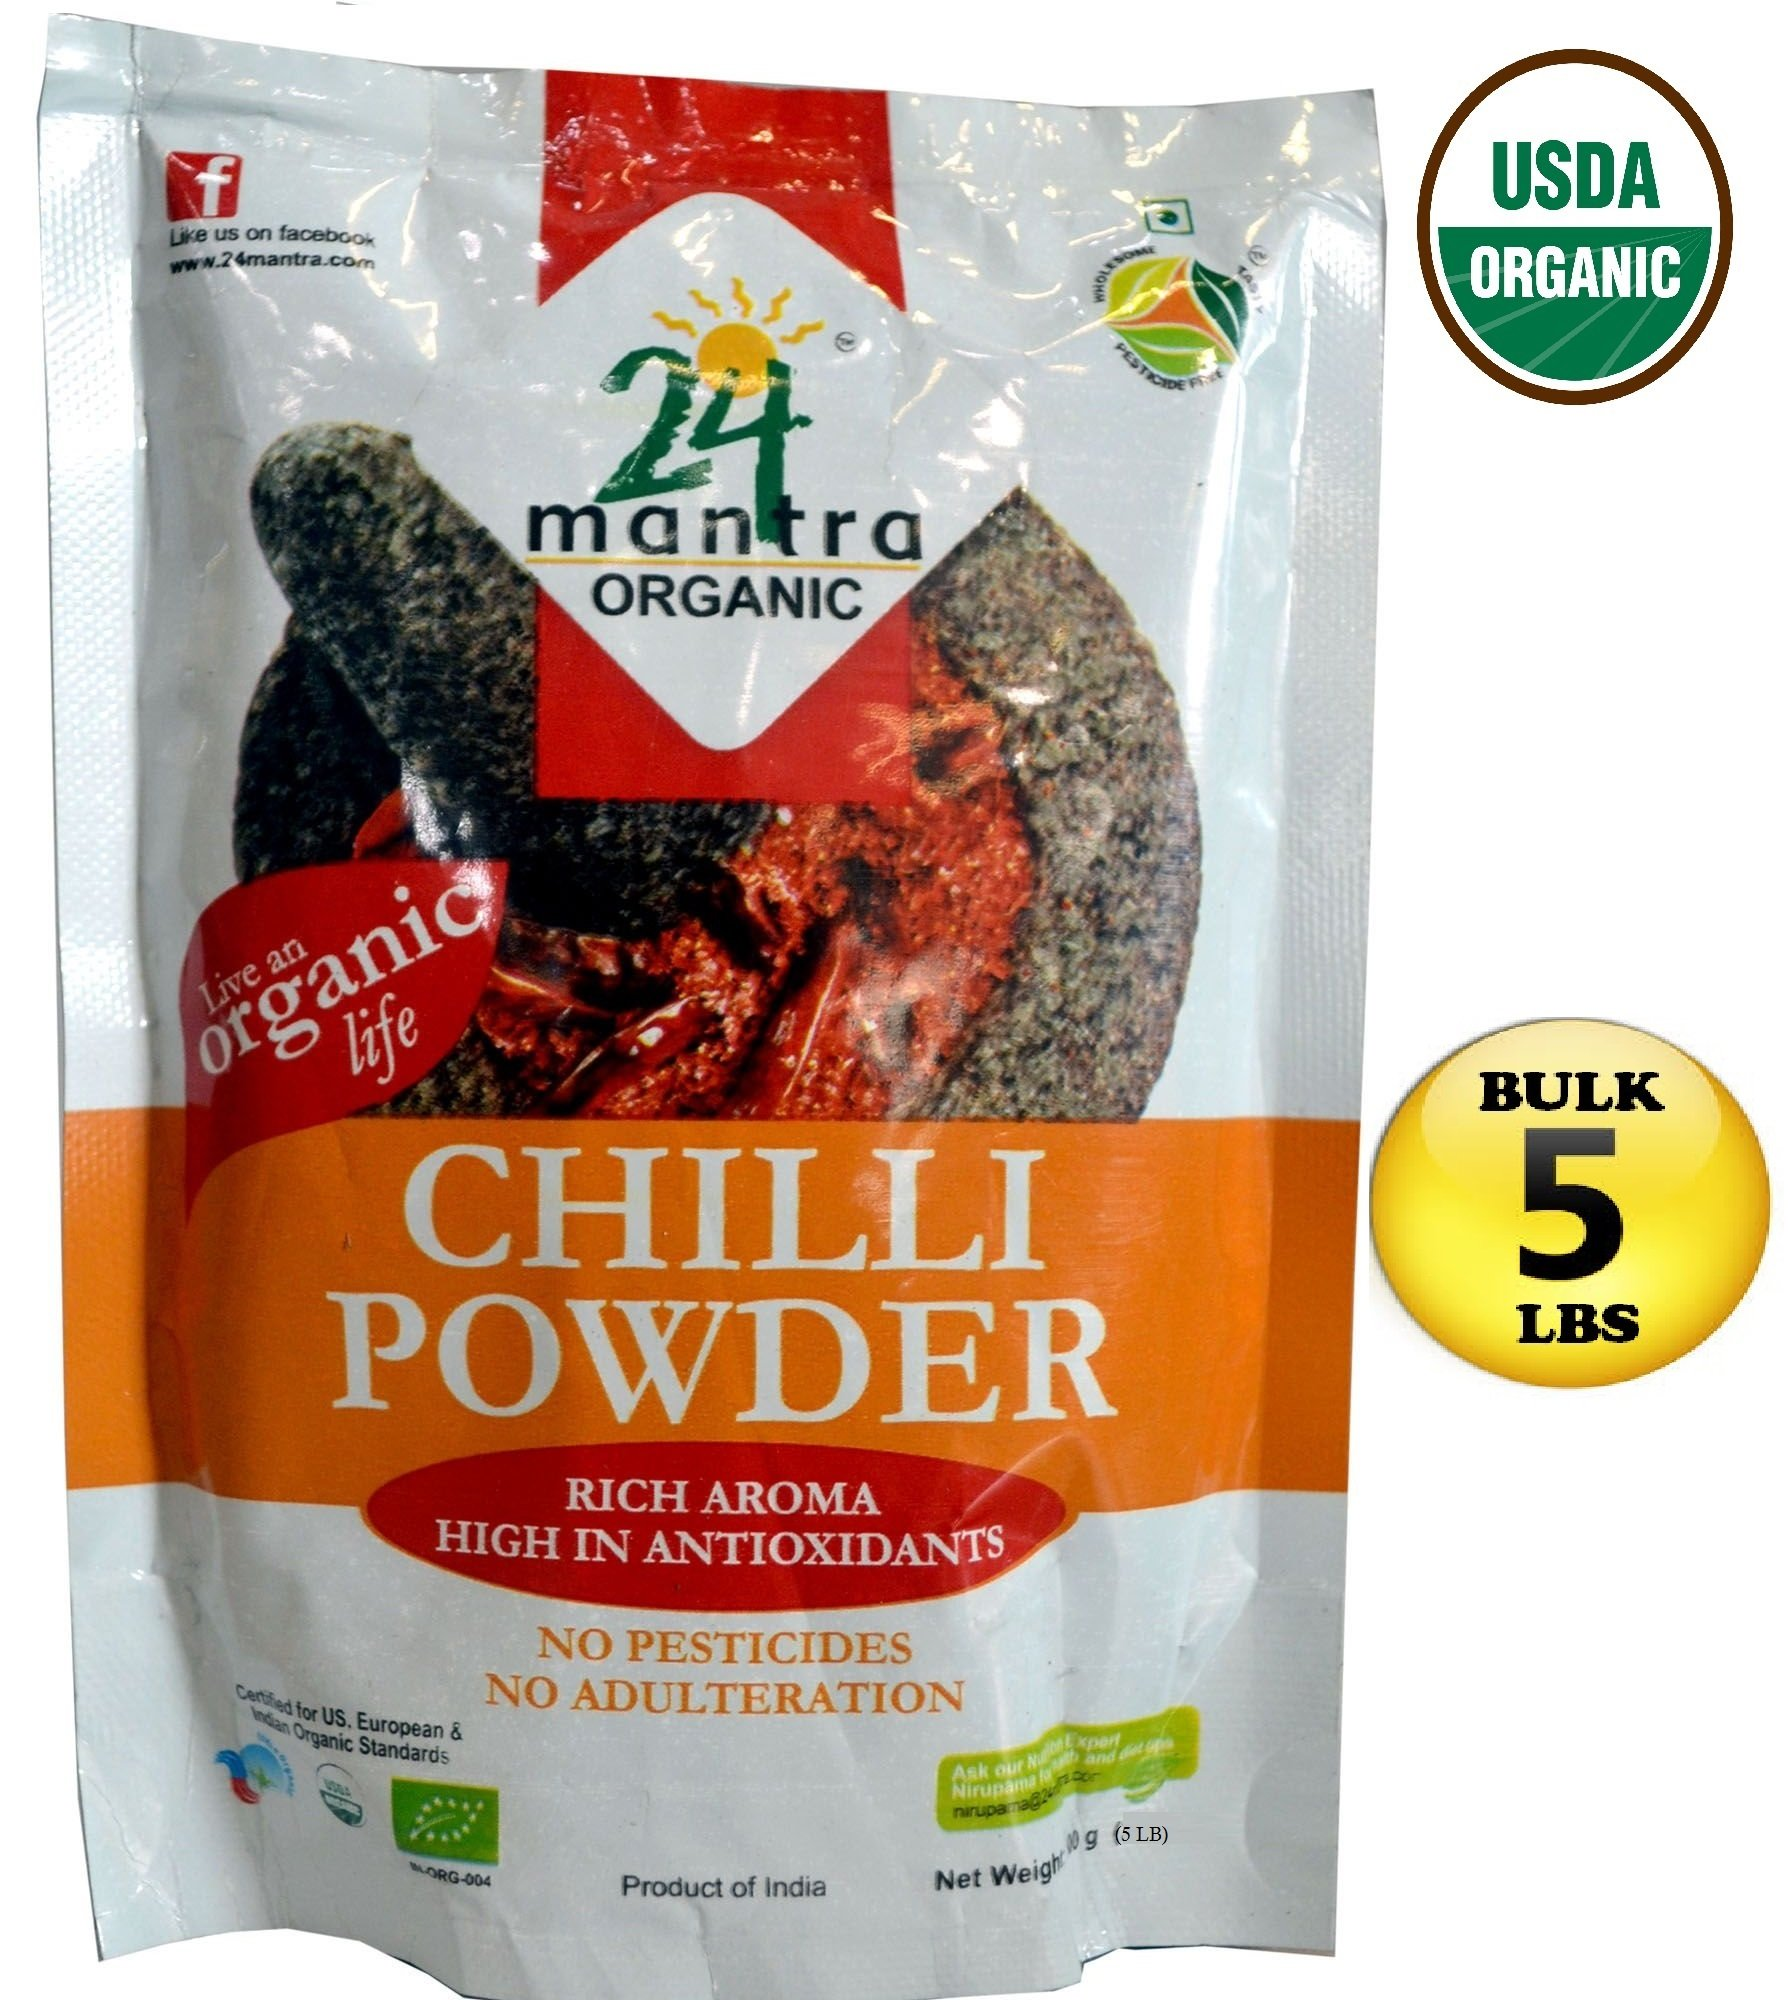 Organic Chili Powder - Chilli Powder - Bulk Size 5 LBS - USDA Certified Organic - ★ Best Price in Amazon - *** Very HOT *** - ★ Adulteration Free ★ Pesticides Free- 24 Mantra Organic by 24 Mantra Organic